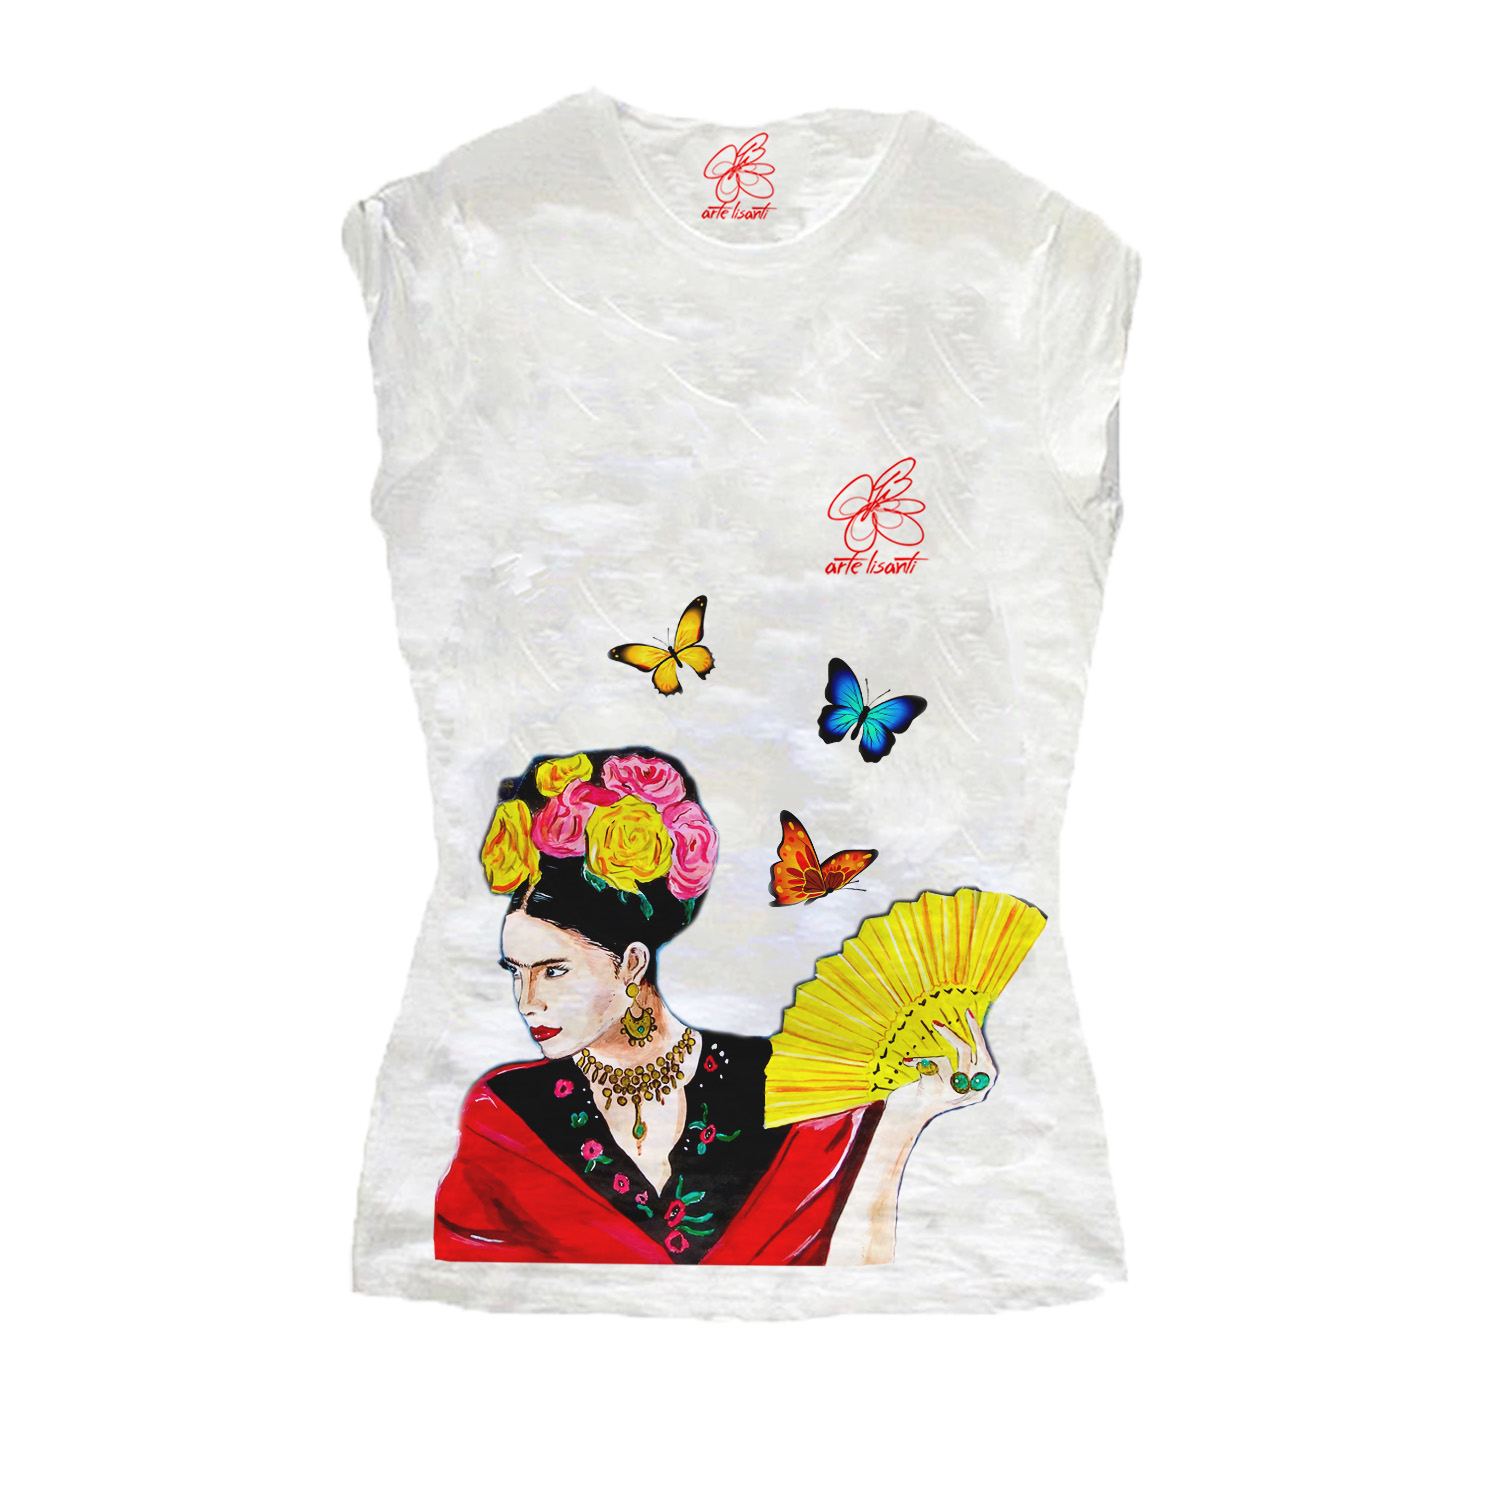 Hand-painted T-shirts - Homage to Frida Kahlo